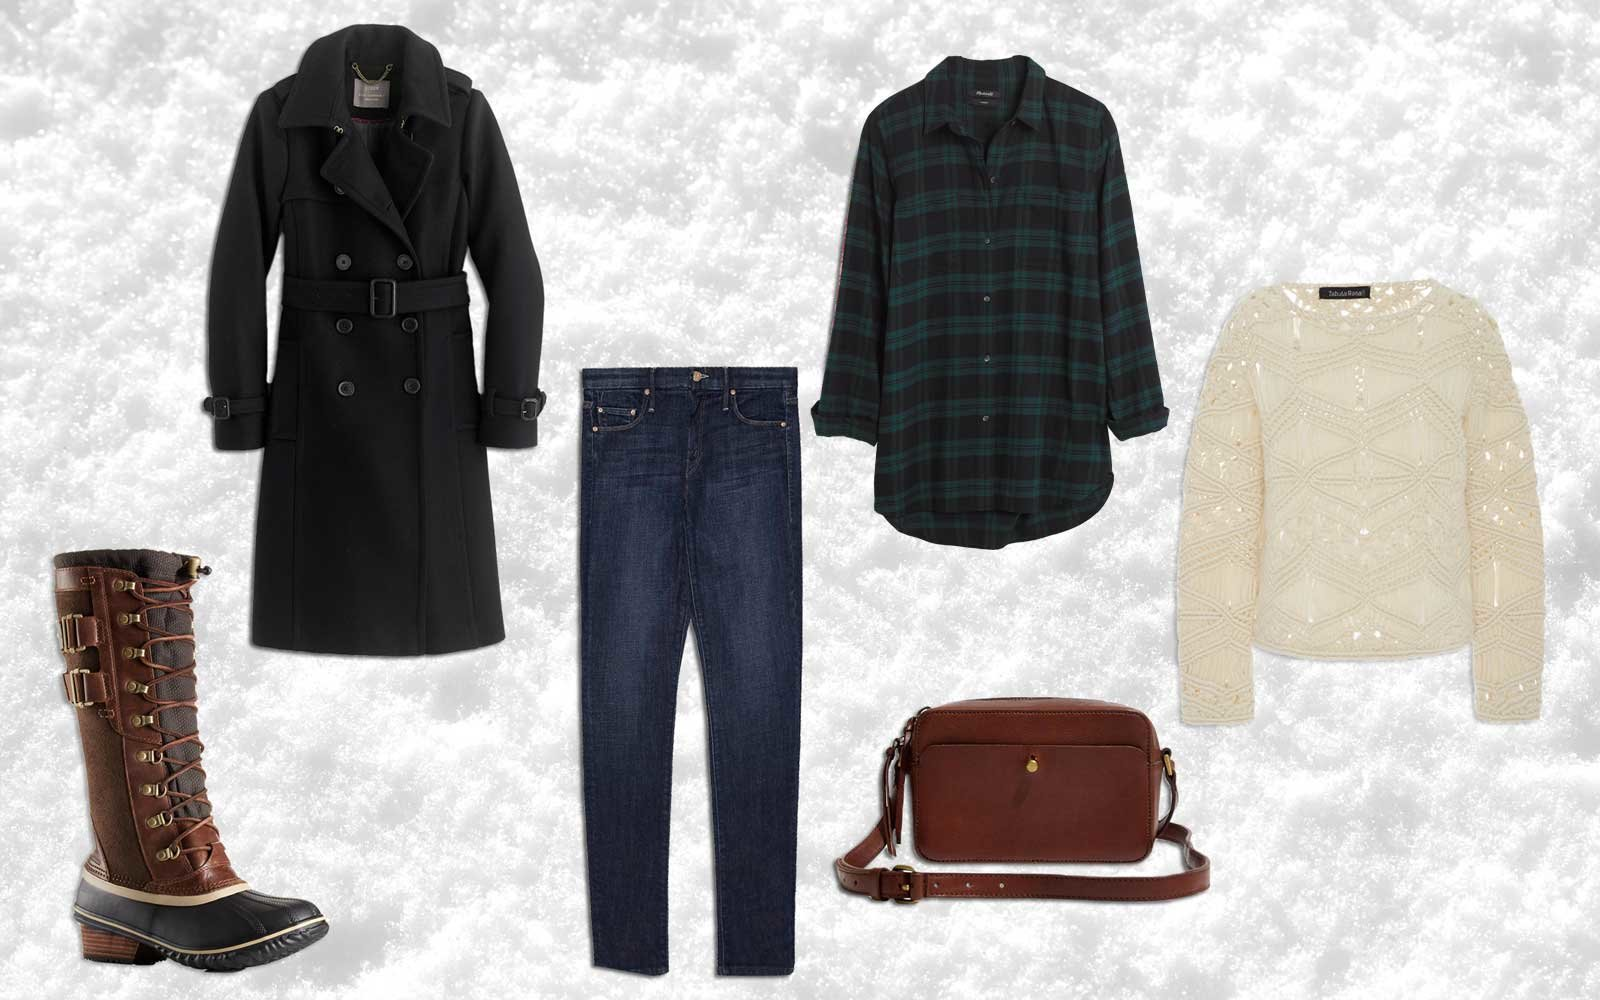 Stylish warm winter clothes forecast to wear in spring in 2019